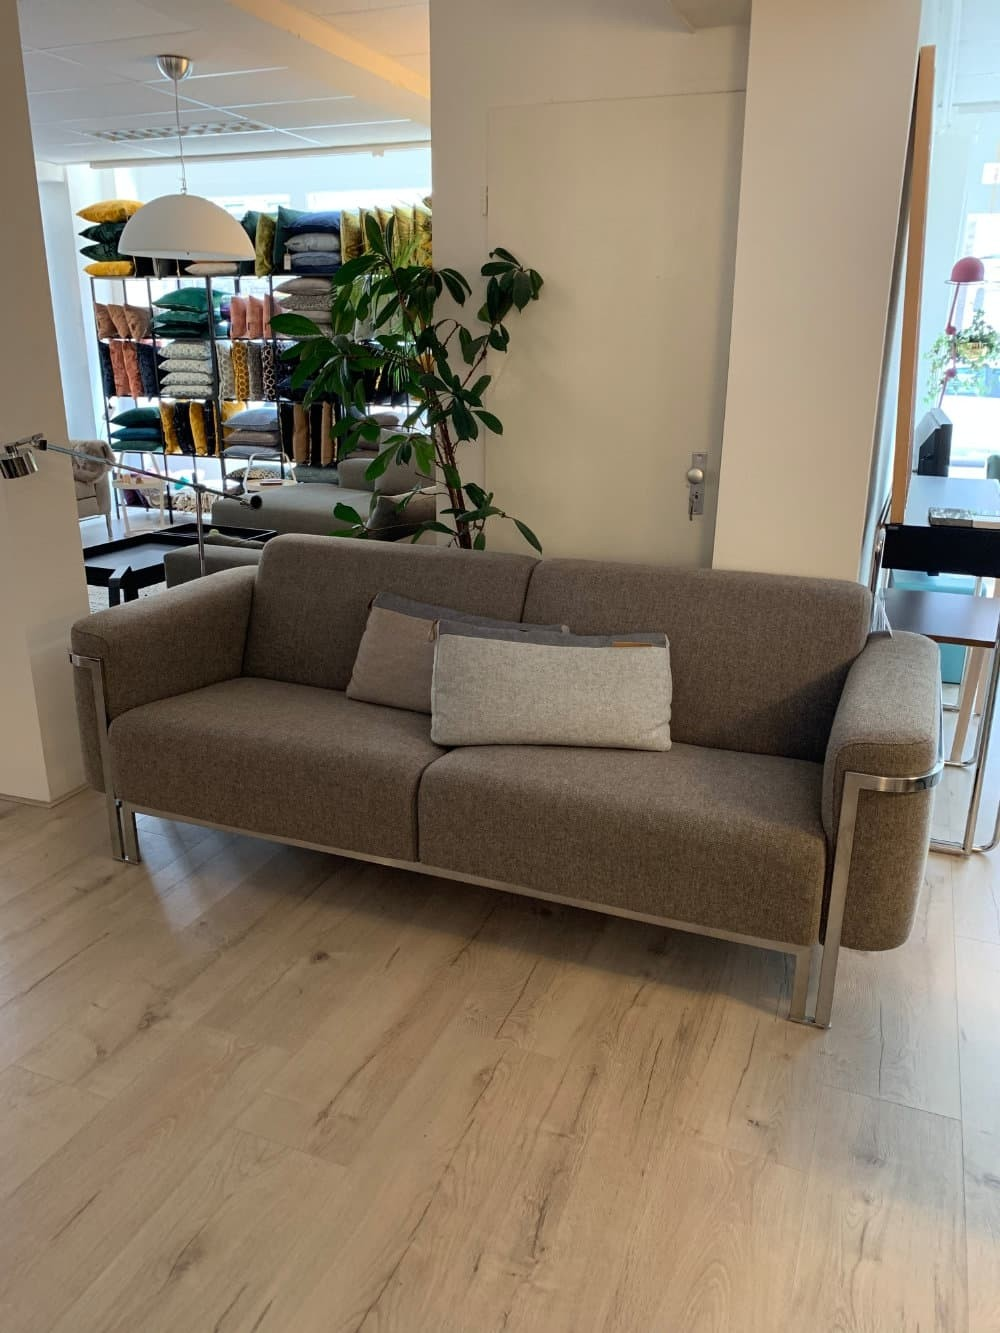 HARVINK FLINK 3-ZITS 218 SHOWROOM [VERKOCHT]